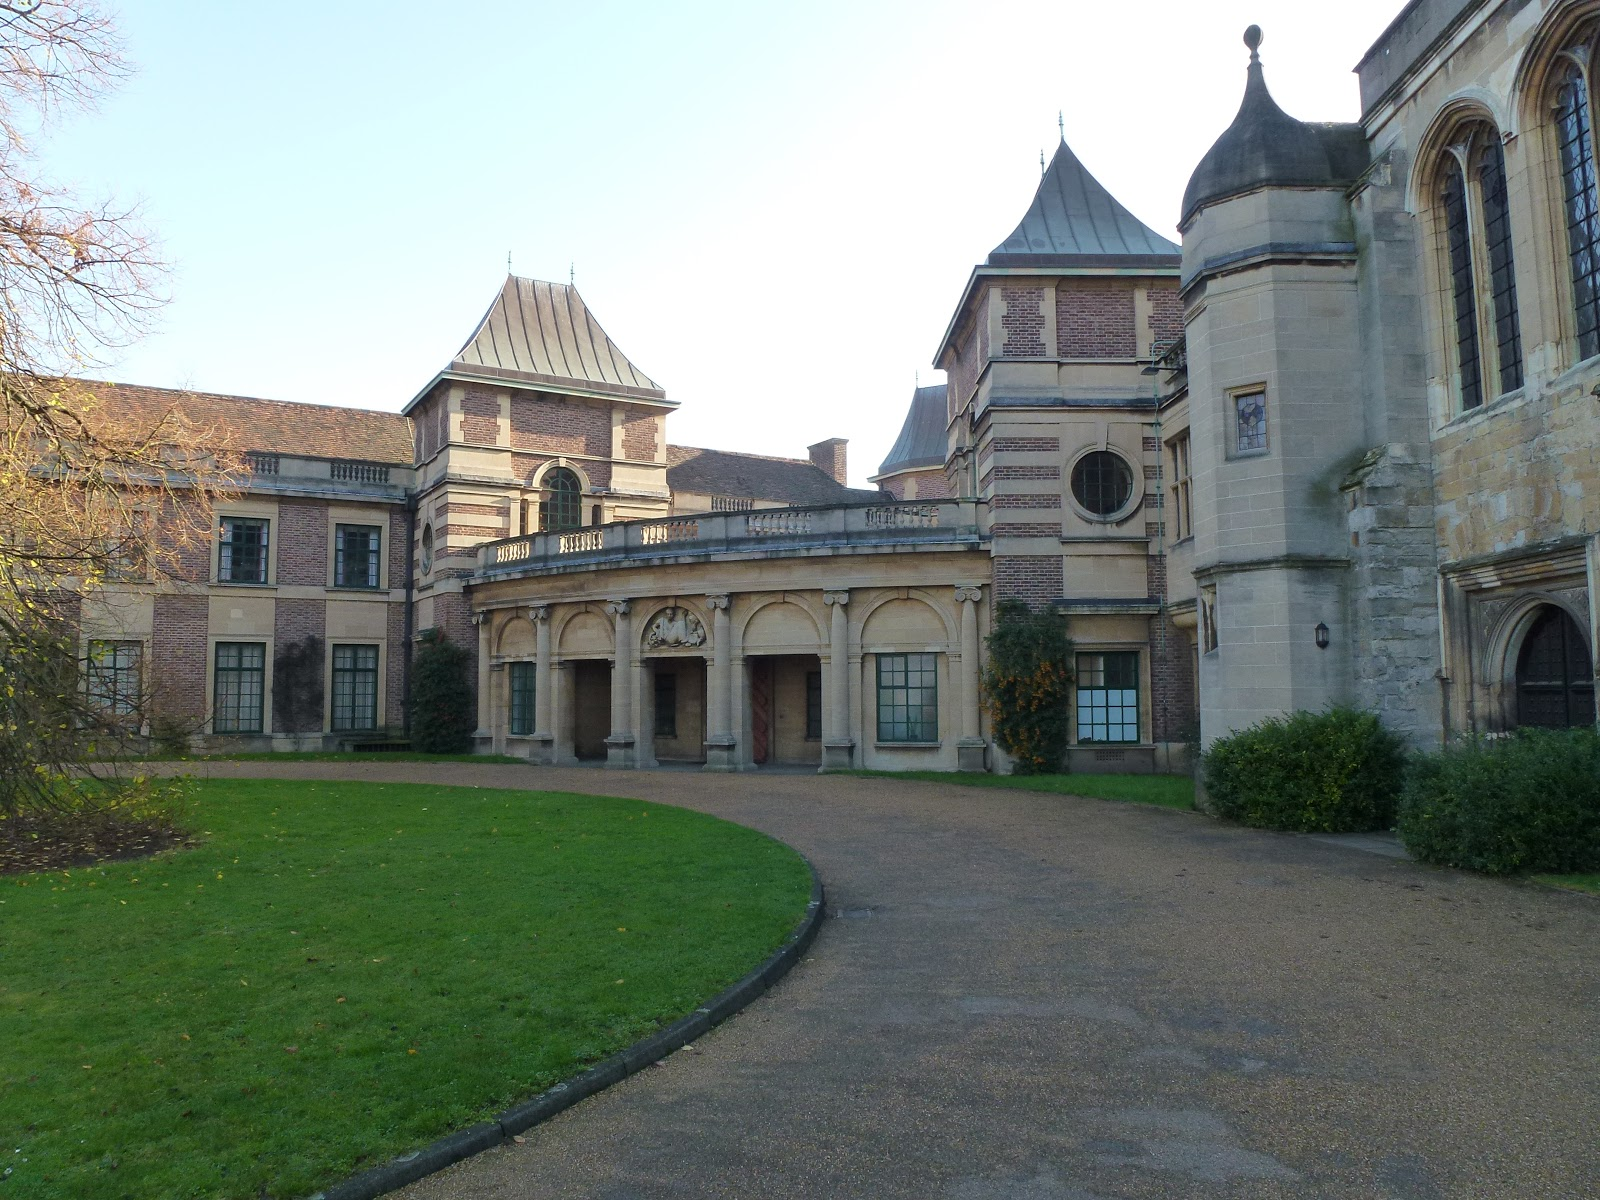 eltham palace greenwich london stunning art deco house and